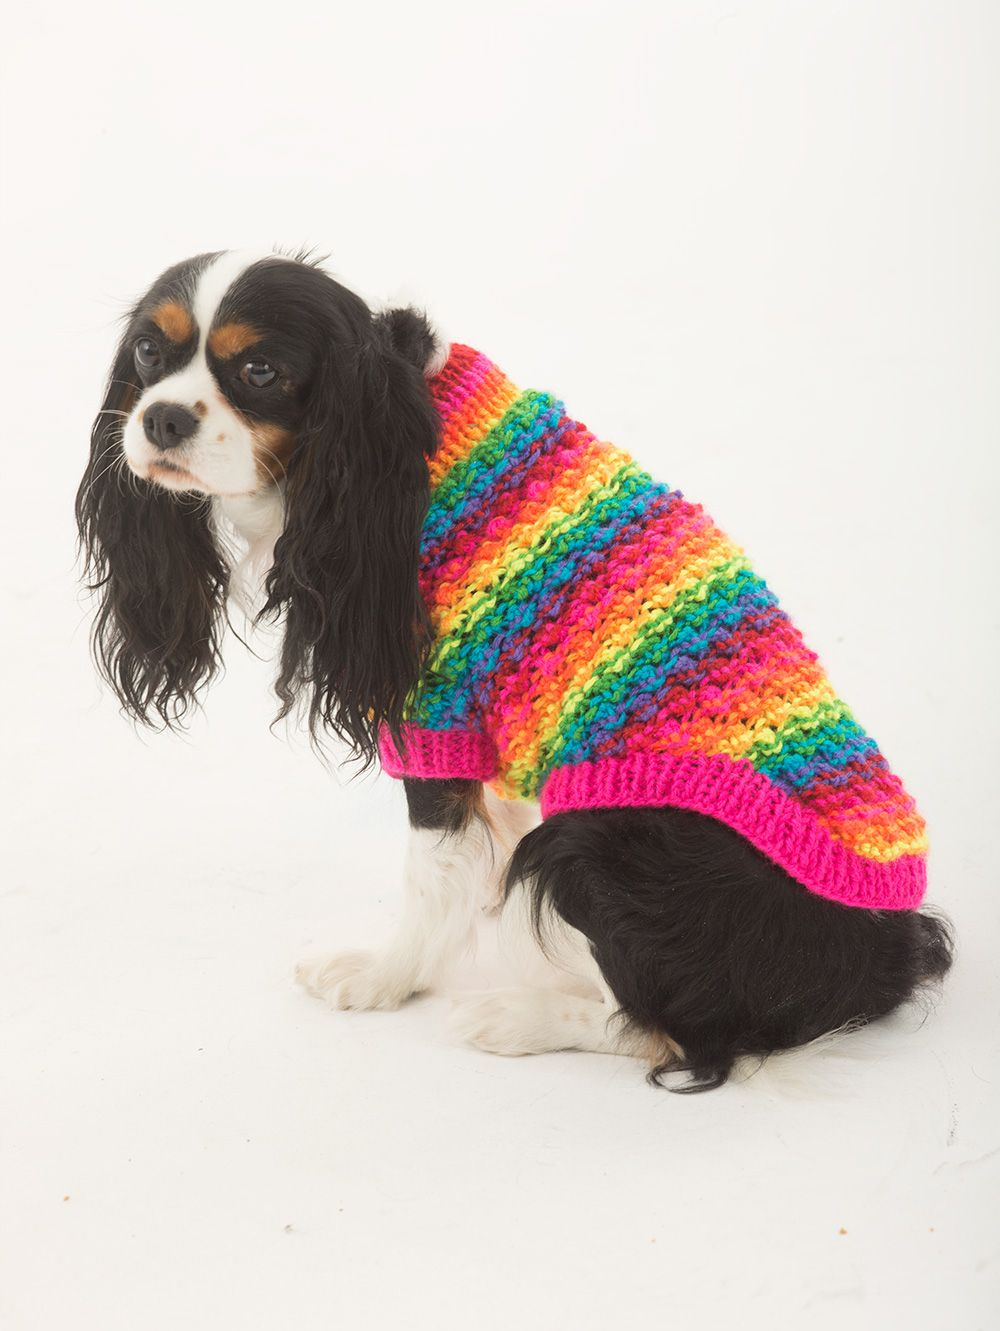 Free knitting pattern l32374 the proud supporter dog sweater free knitting pattern l32374 the proud supporter dog sweater lion bankloansurffo Gallery